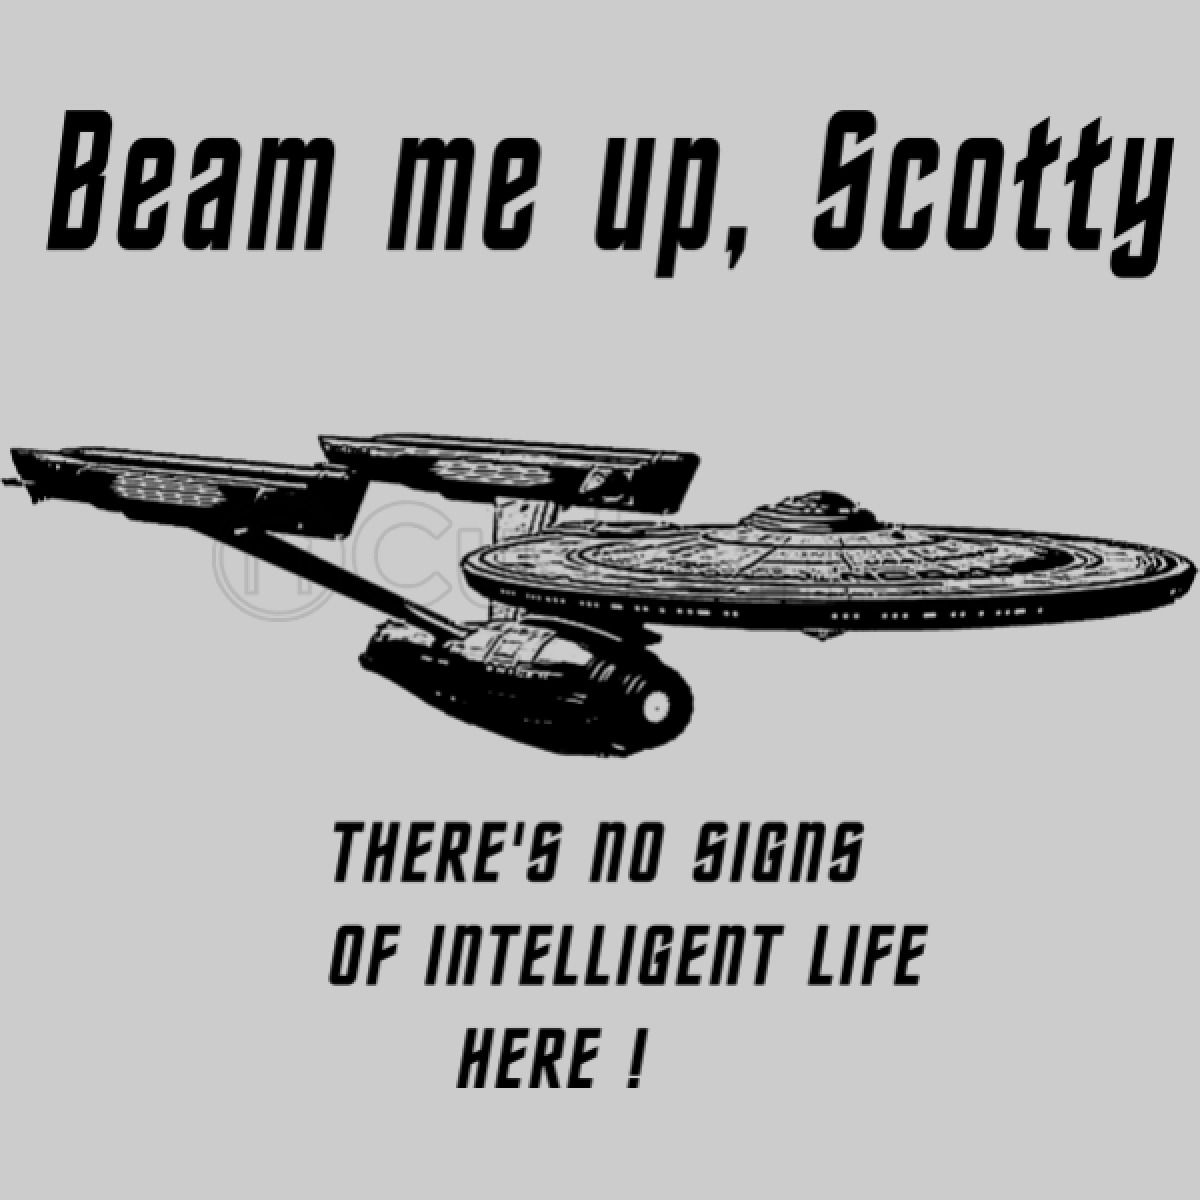 1457254443-Beam-me-up-Scotty-theres-no-s